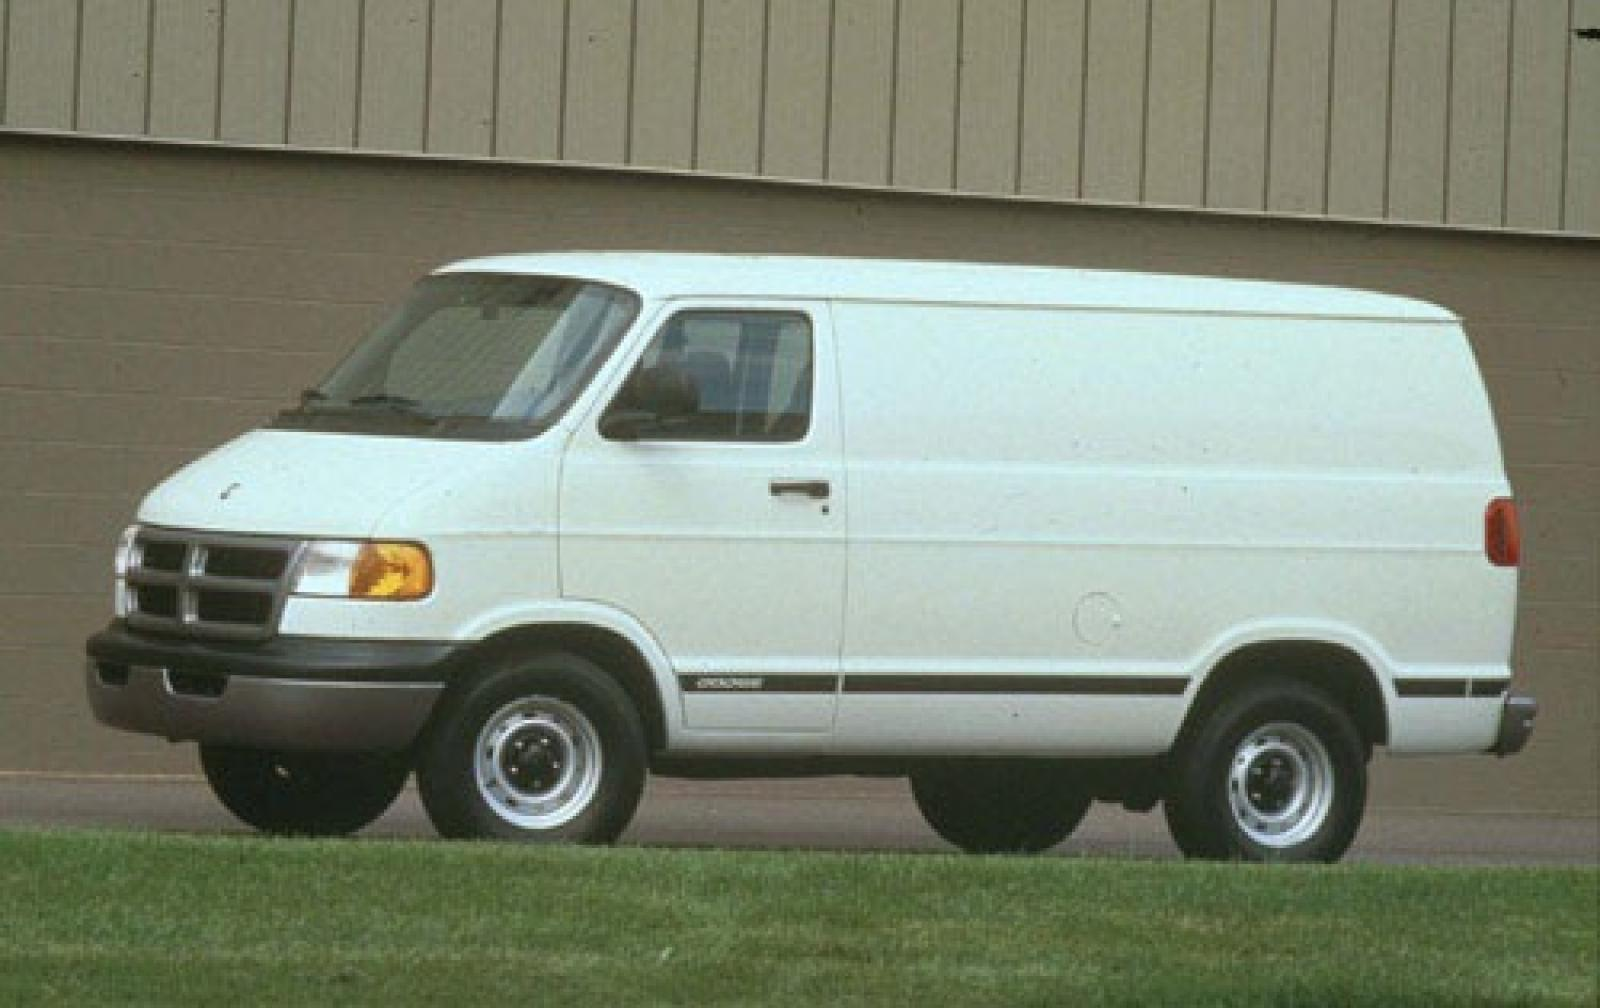 1999 dodge ram van information and photos zombiedrive. Black Bedroom Furniture Sets. Home Design Ideas